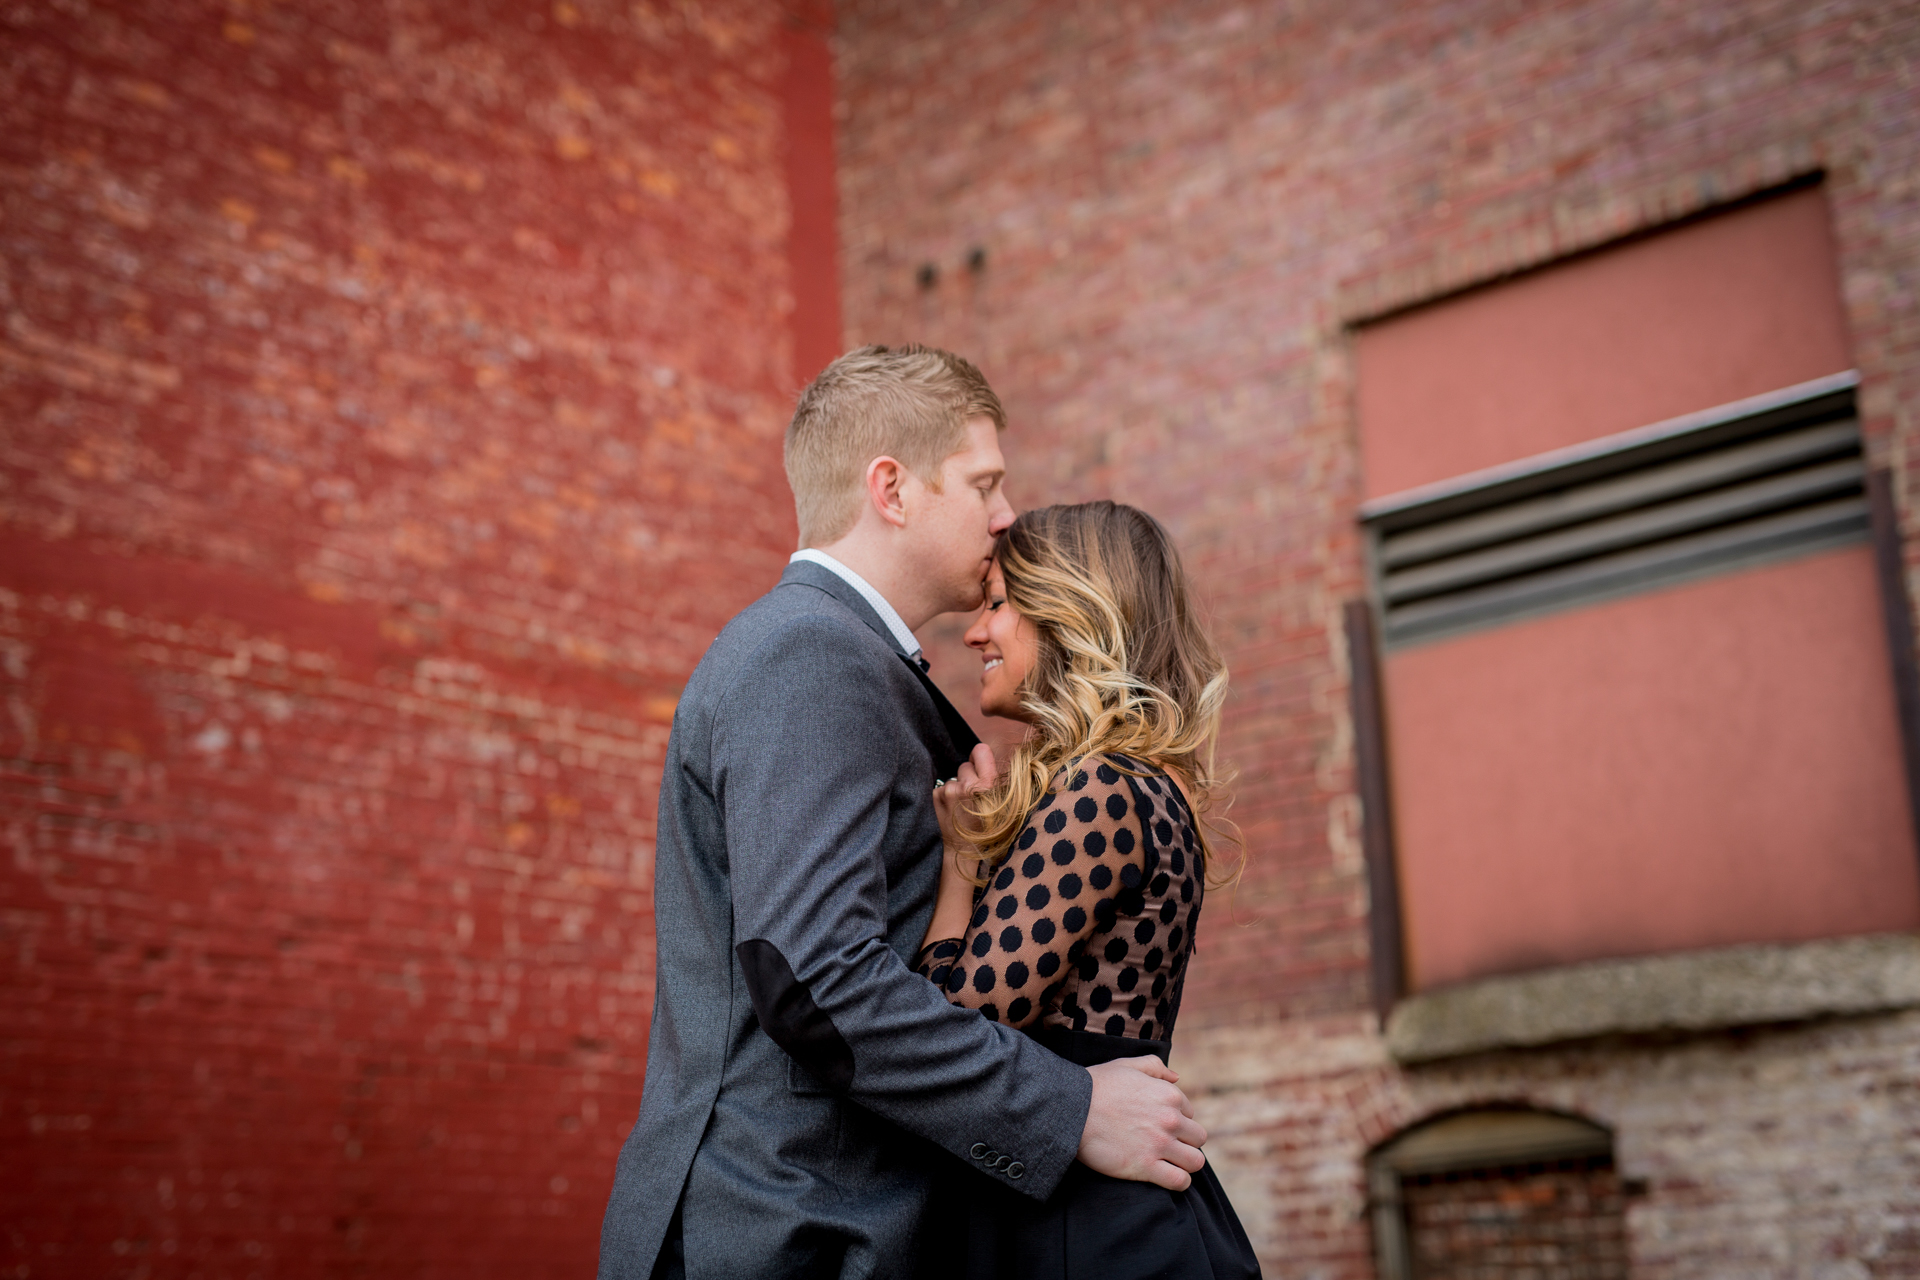 peoria illinois bloomington normal engagement pictures peoria riverfront wedding photographer-6.jpg